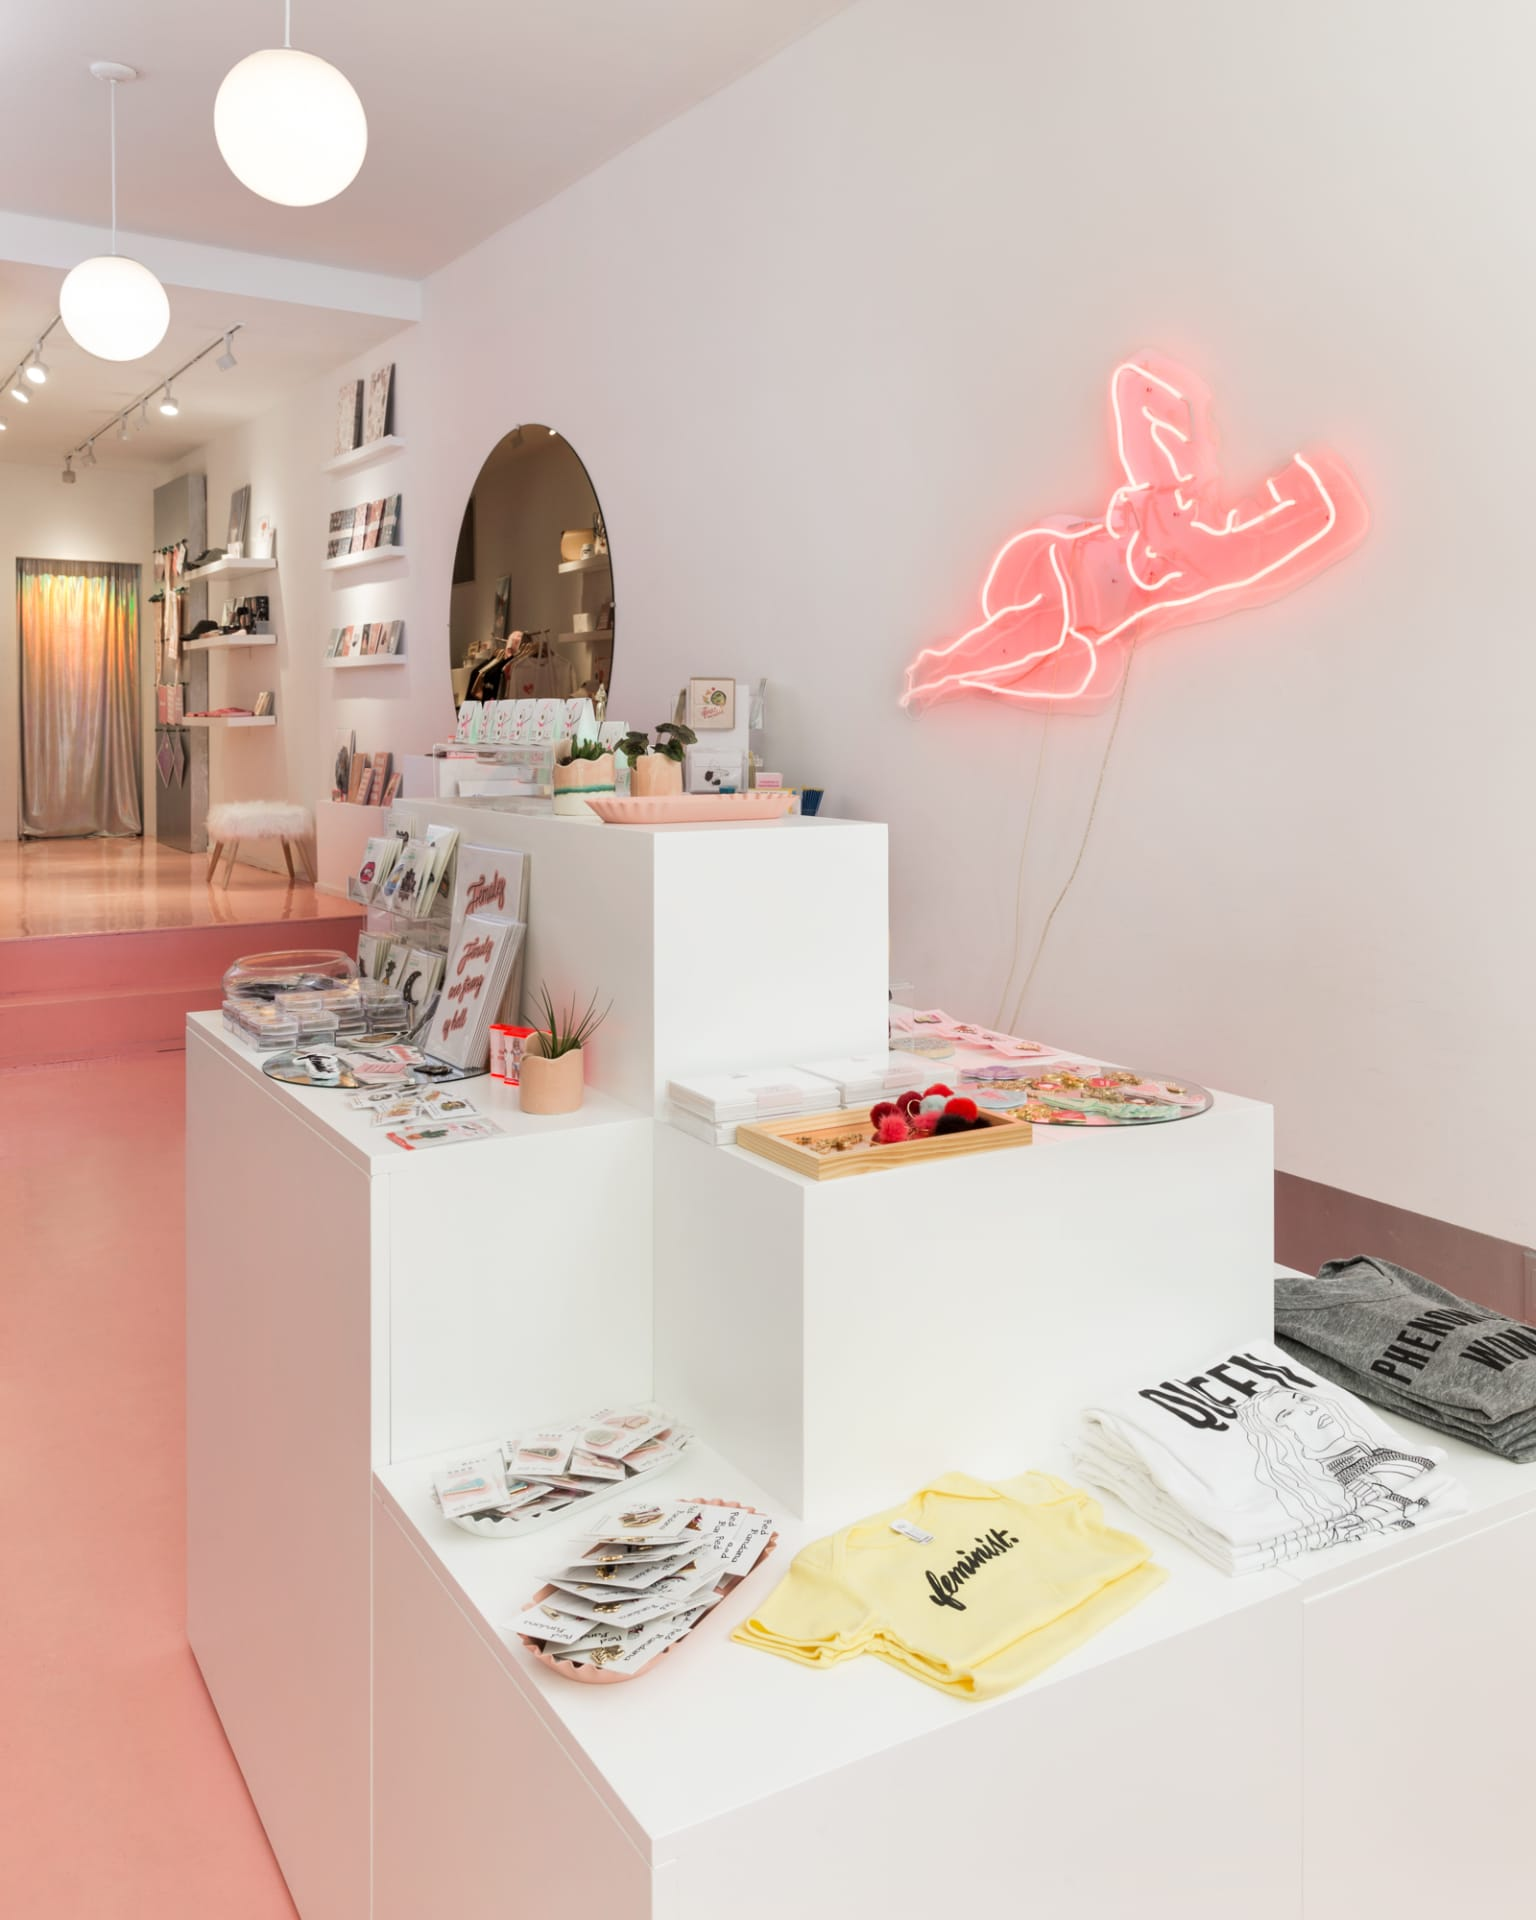 Interior Design for Bulletin.co's Retail Space in NYC